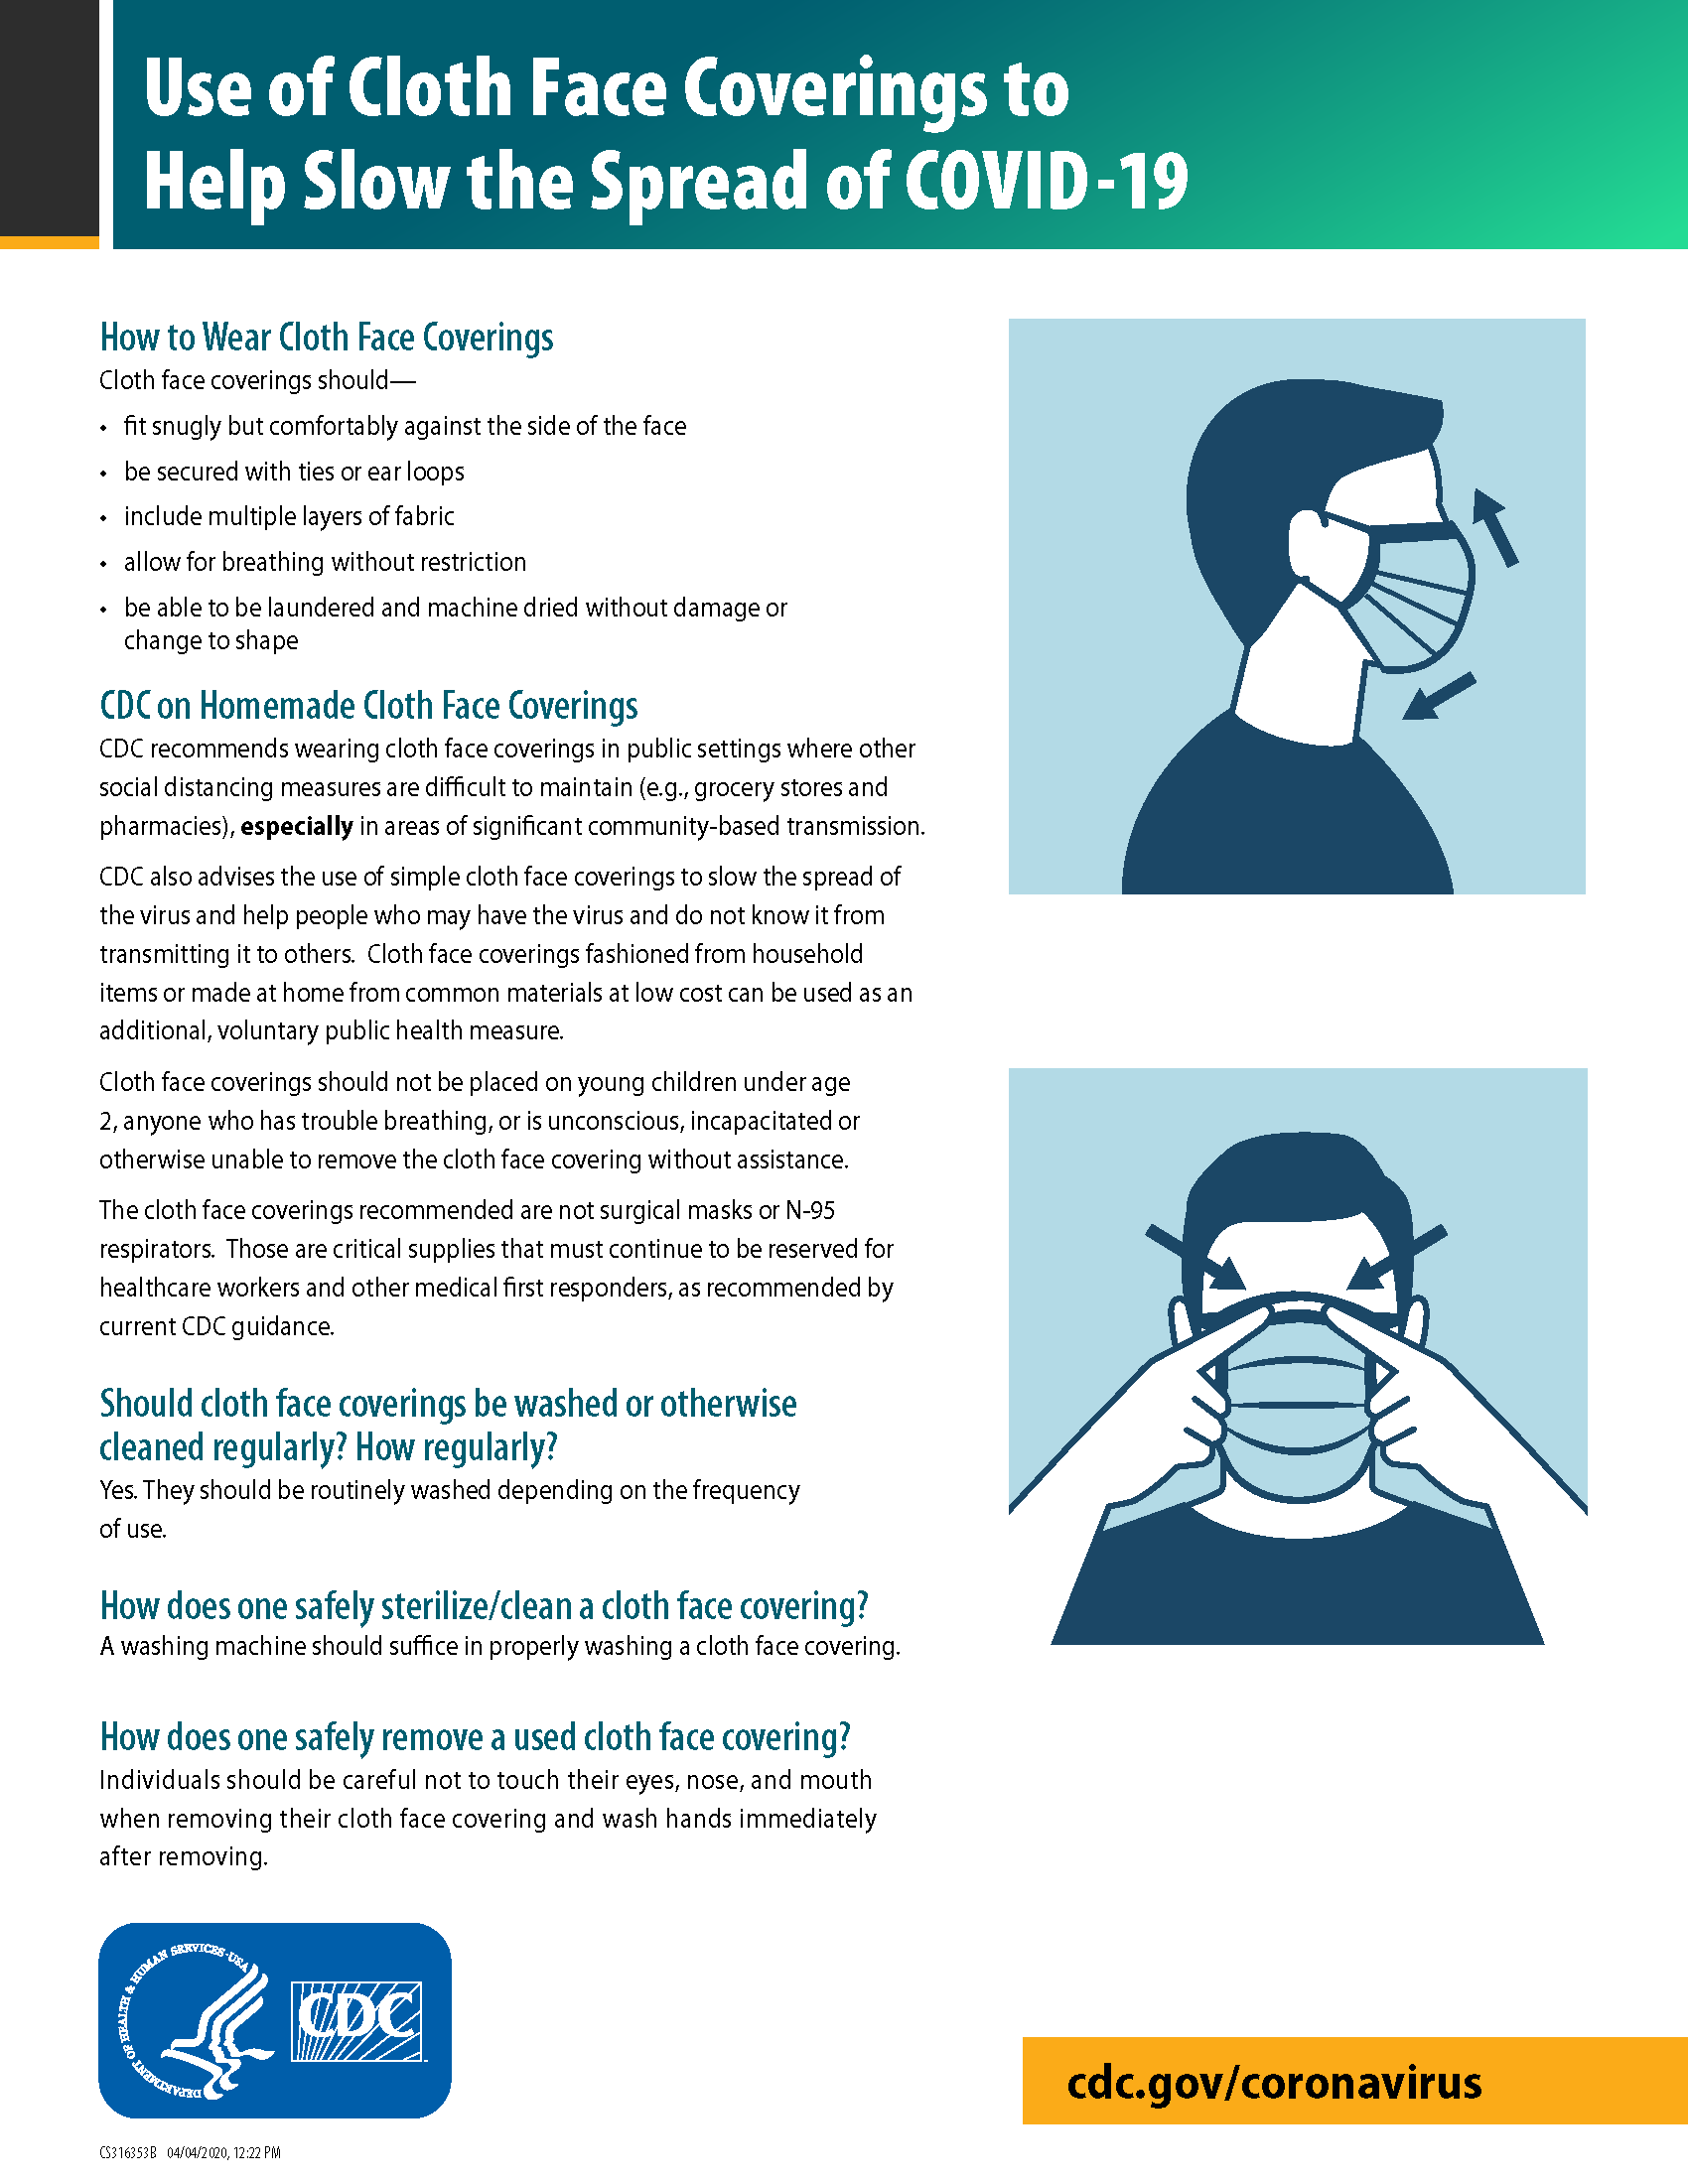 Graphic 1 of CDC cloth face coverings instructions